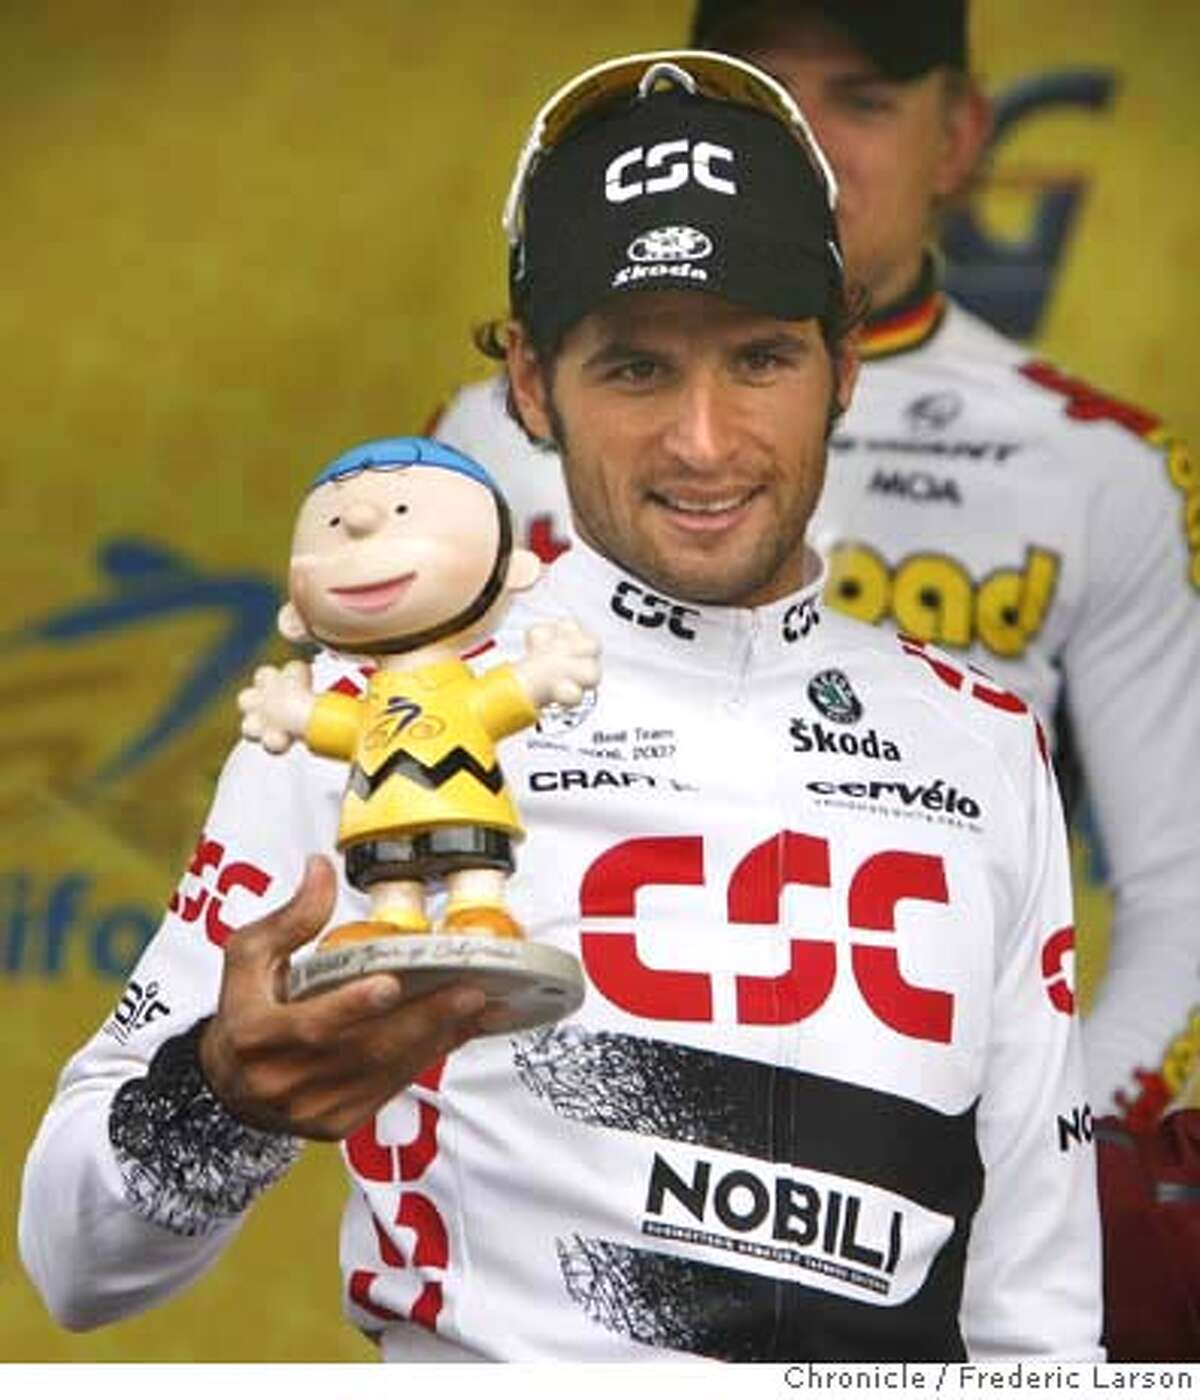 J.J (Juan Jose) Haedo of Argentina wins the second stage of Amgen Tour of California from Sausaulito crossing the finish line in Santa Rosa and receives a Charlie Brown trophy.